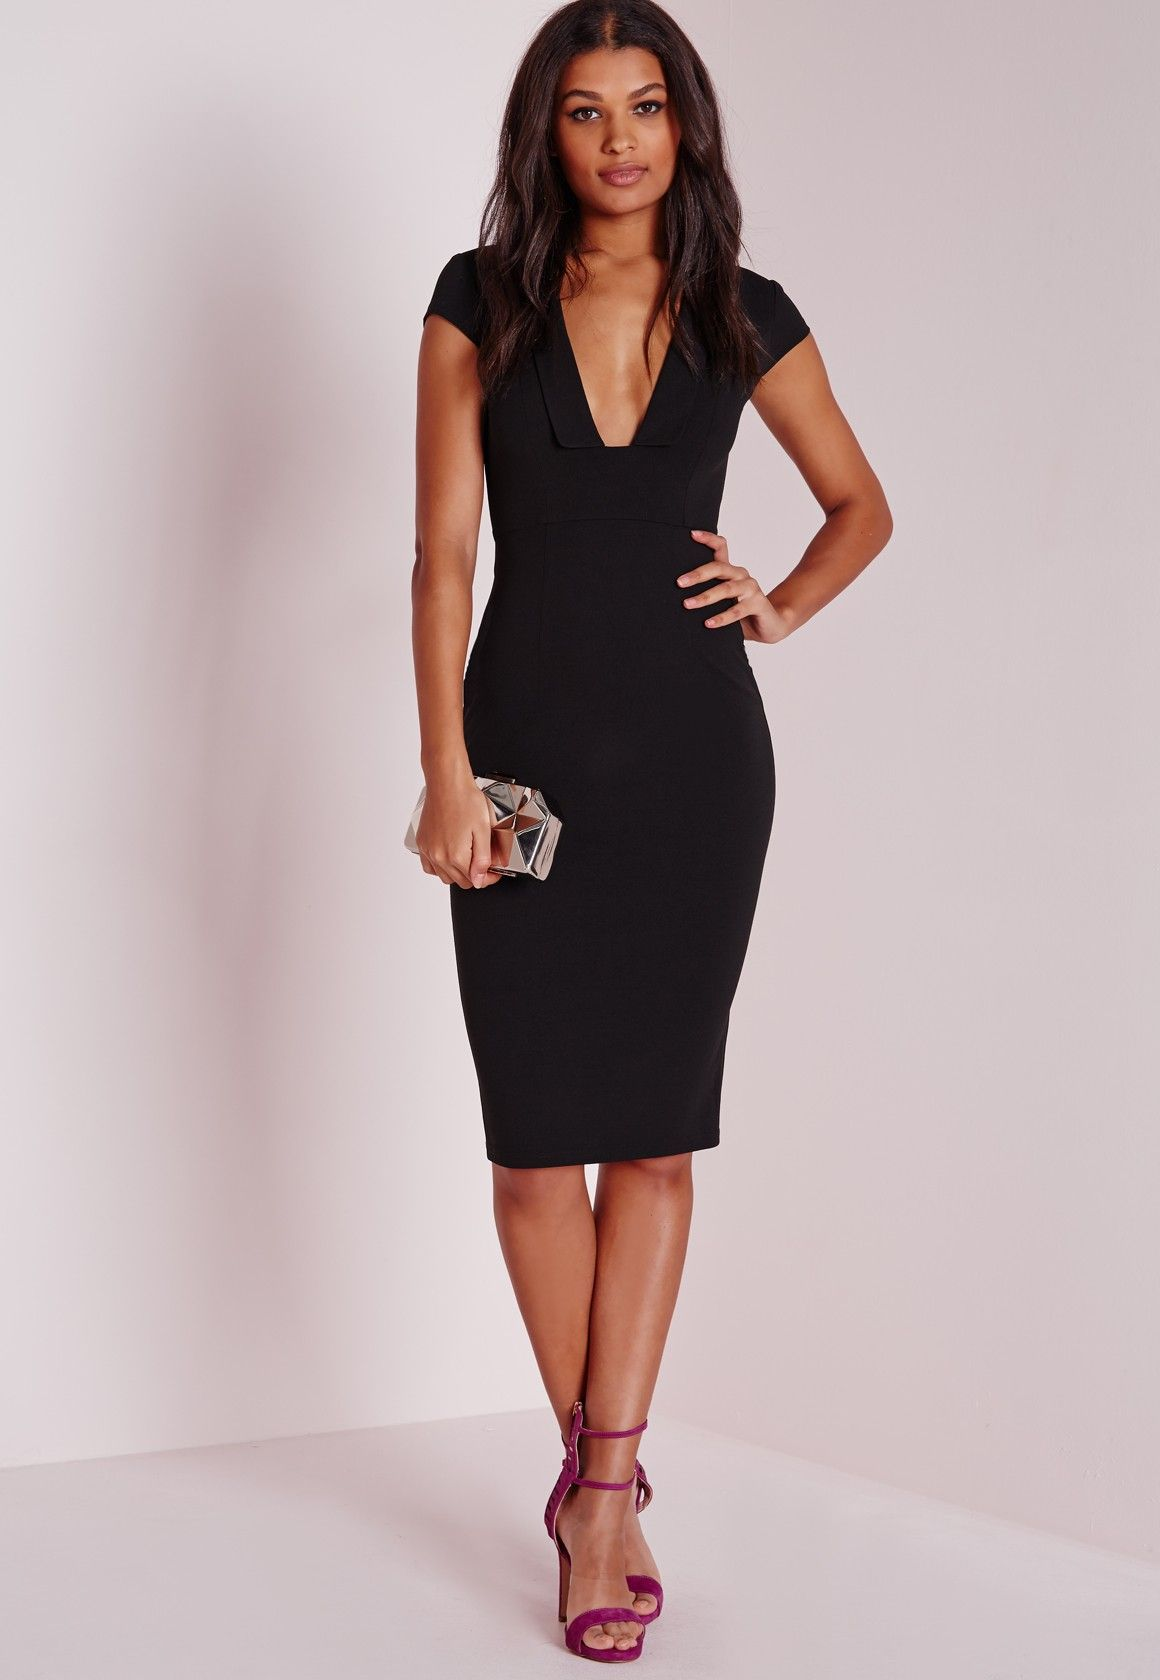 Crepe Cap Sleeve Midi Dress Black Cloths From Across The Pond